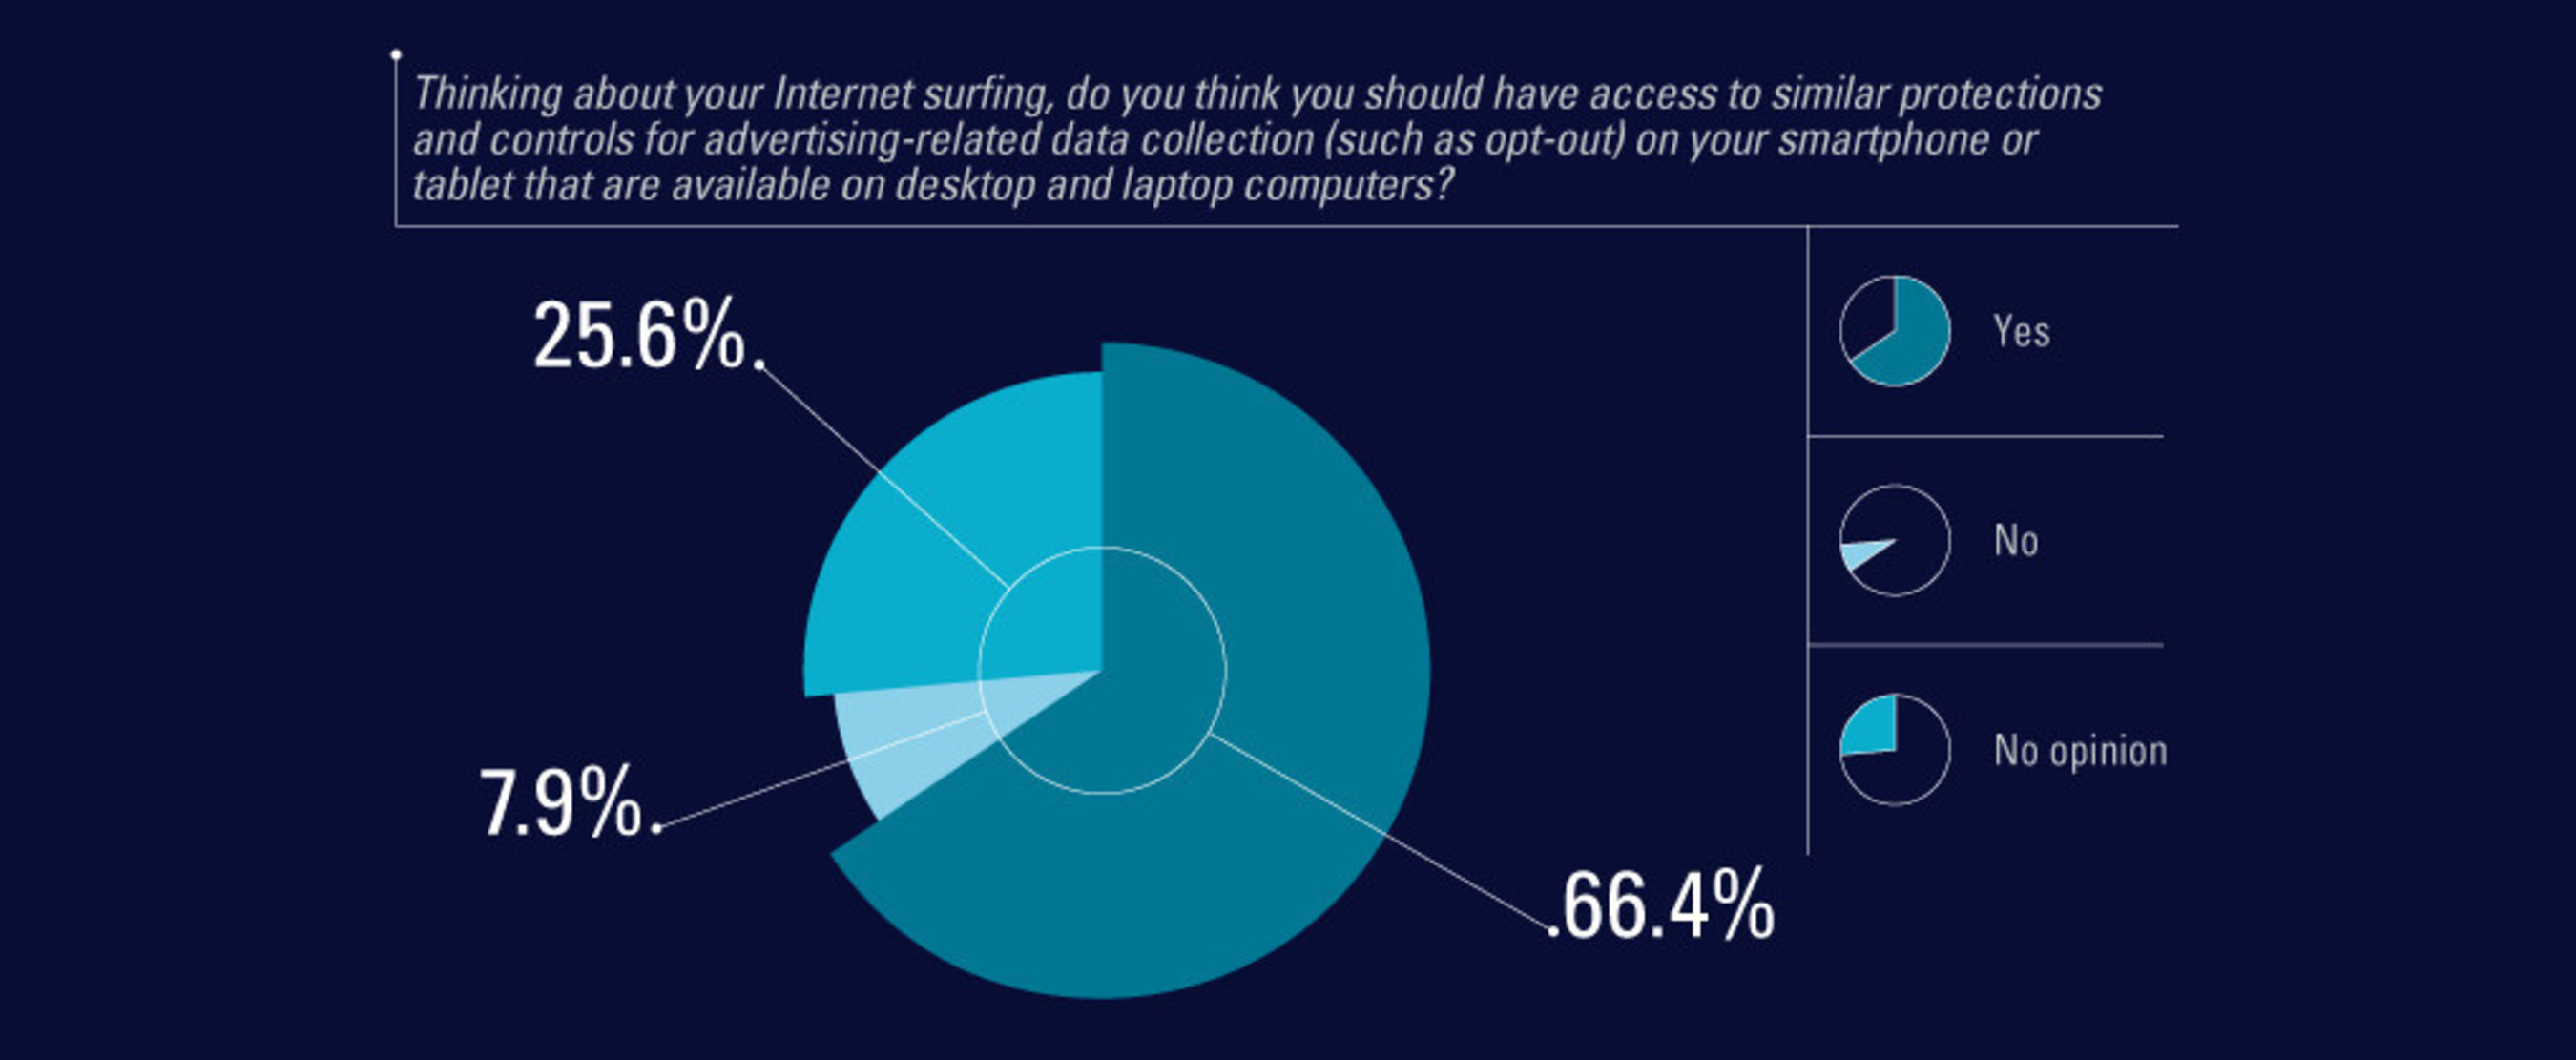 Zogby Analytics poll finds that Americans want the same data-collection protections that are available on desktop and laptop computers on their mobile devices.